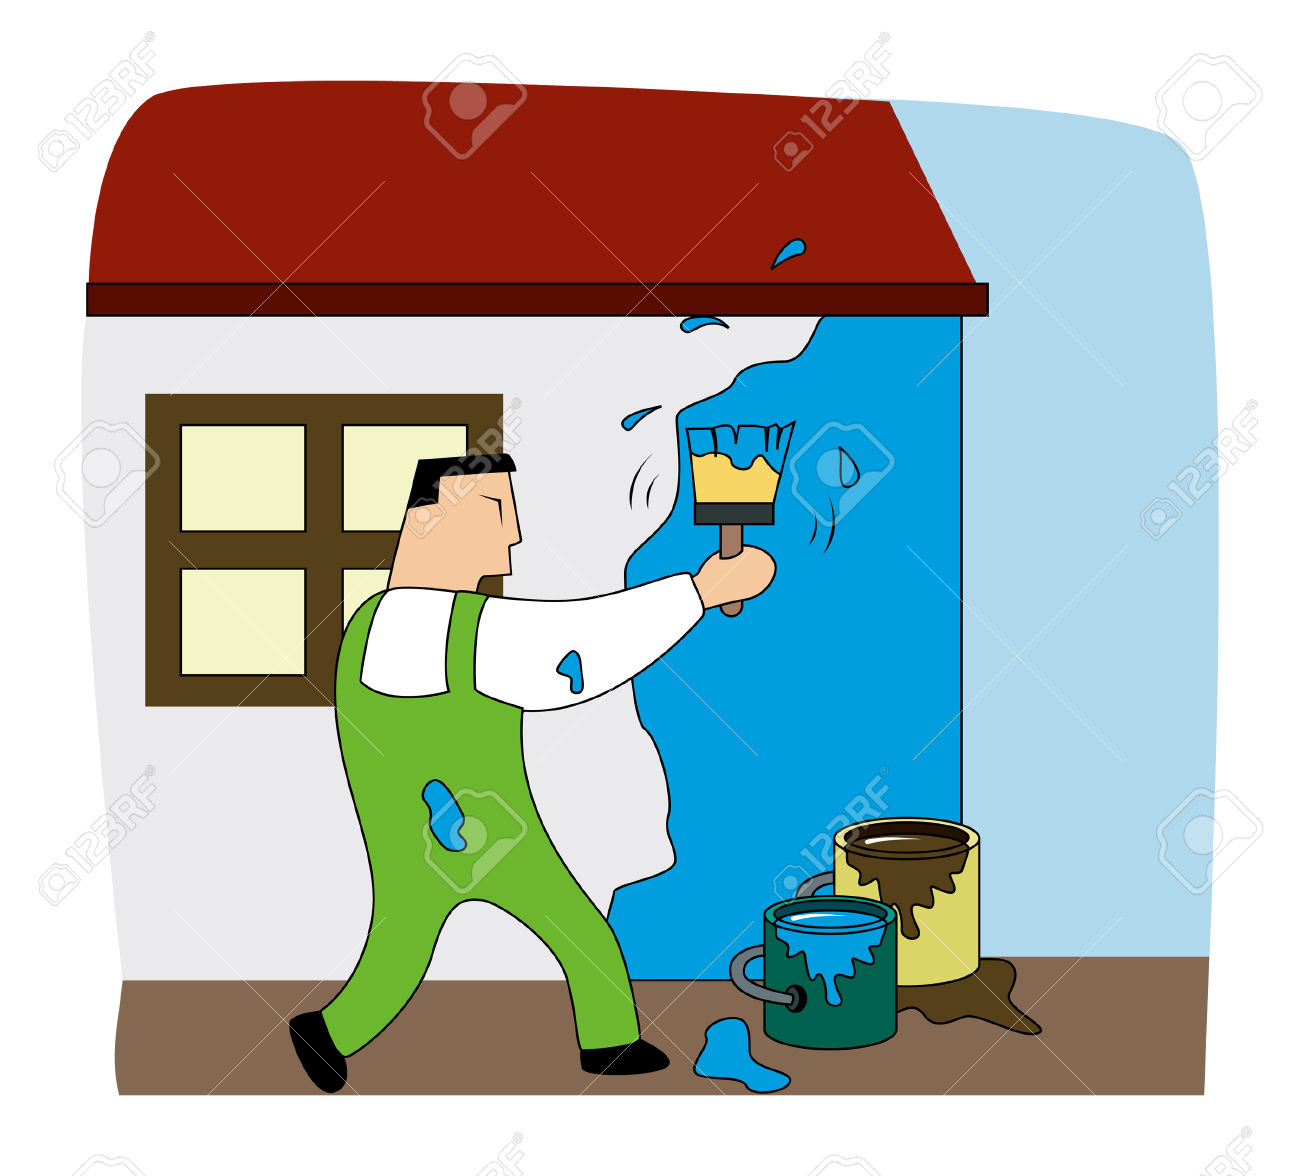 Painting a house clipart.